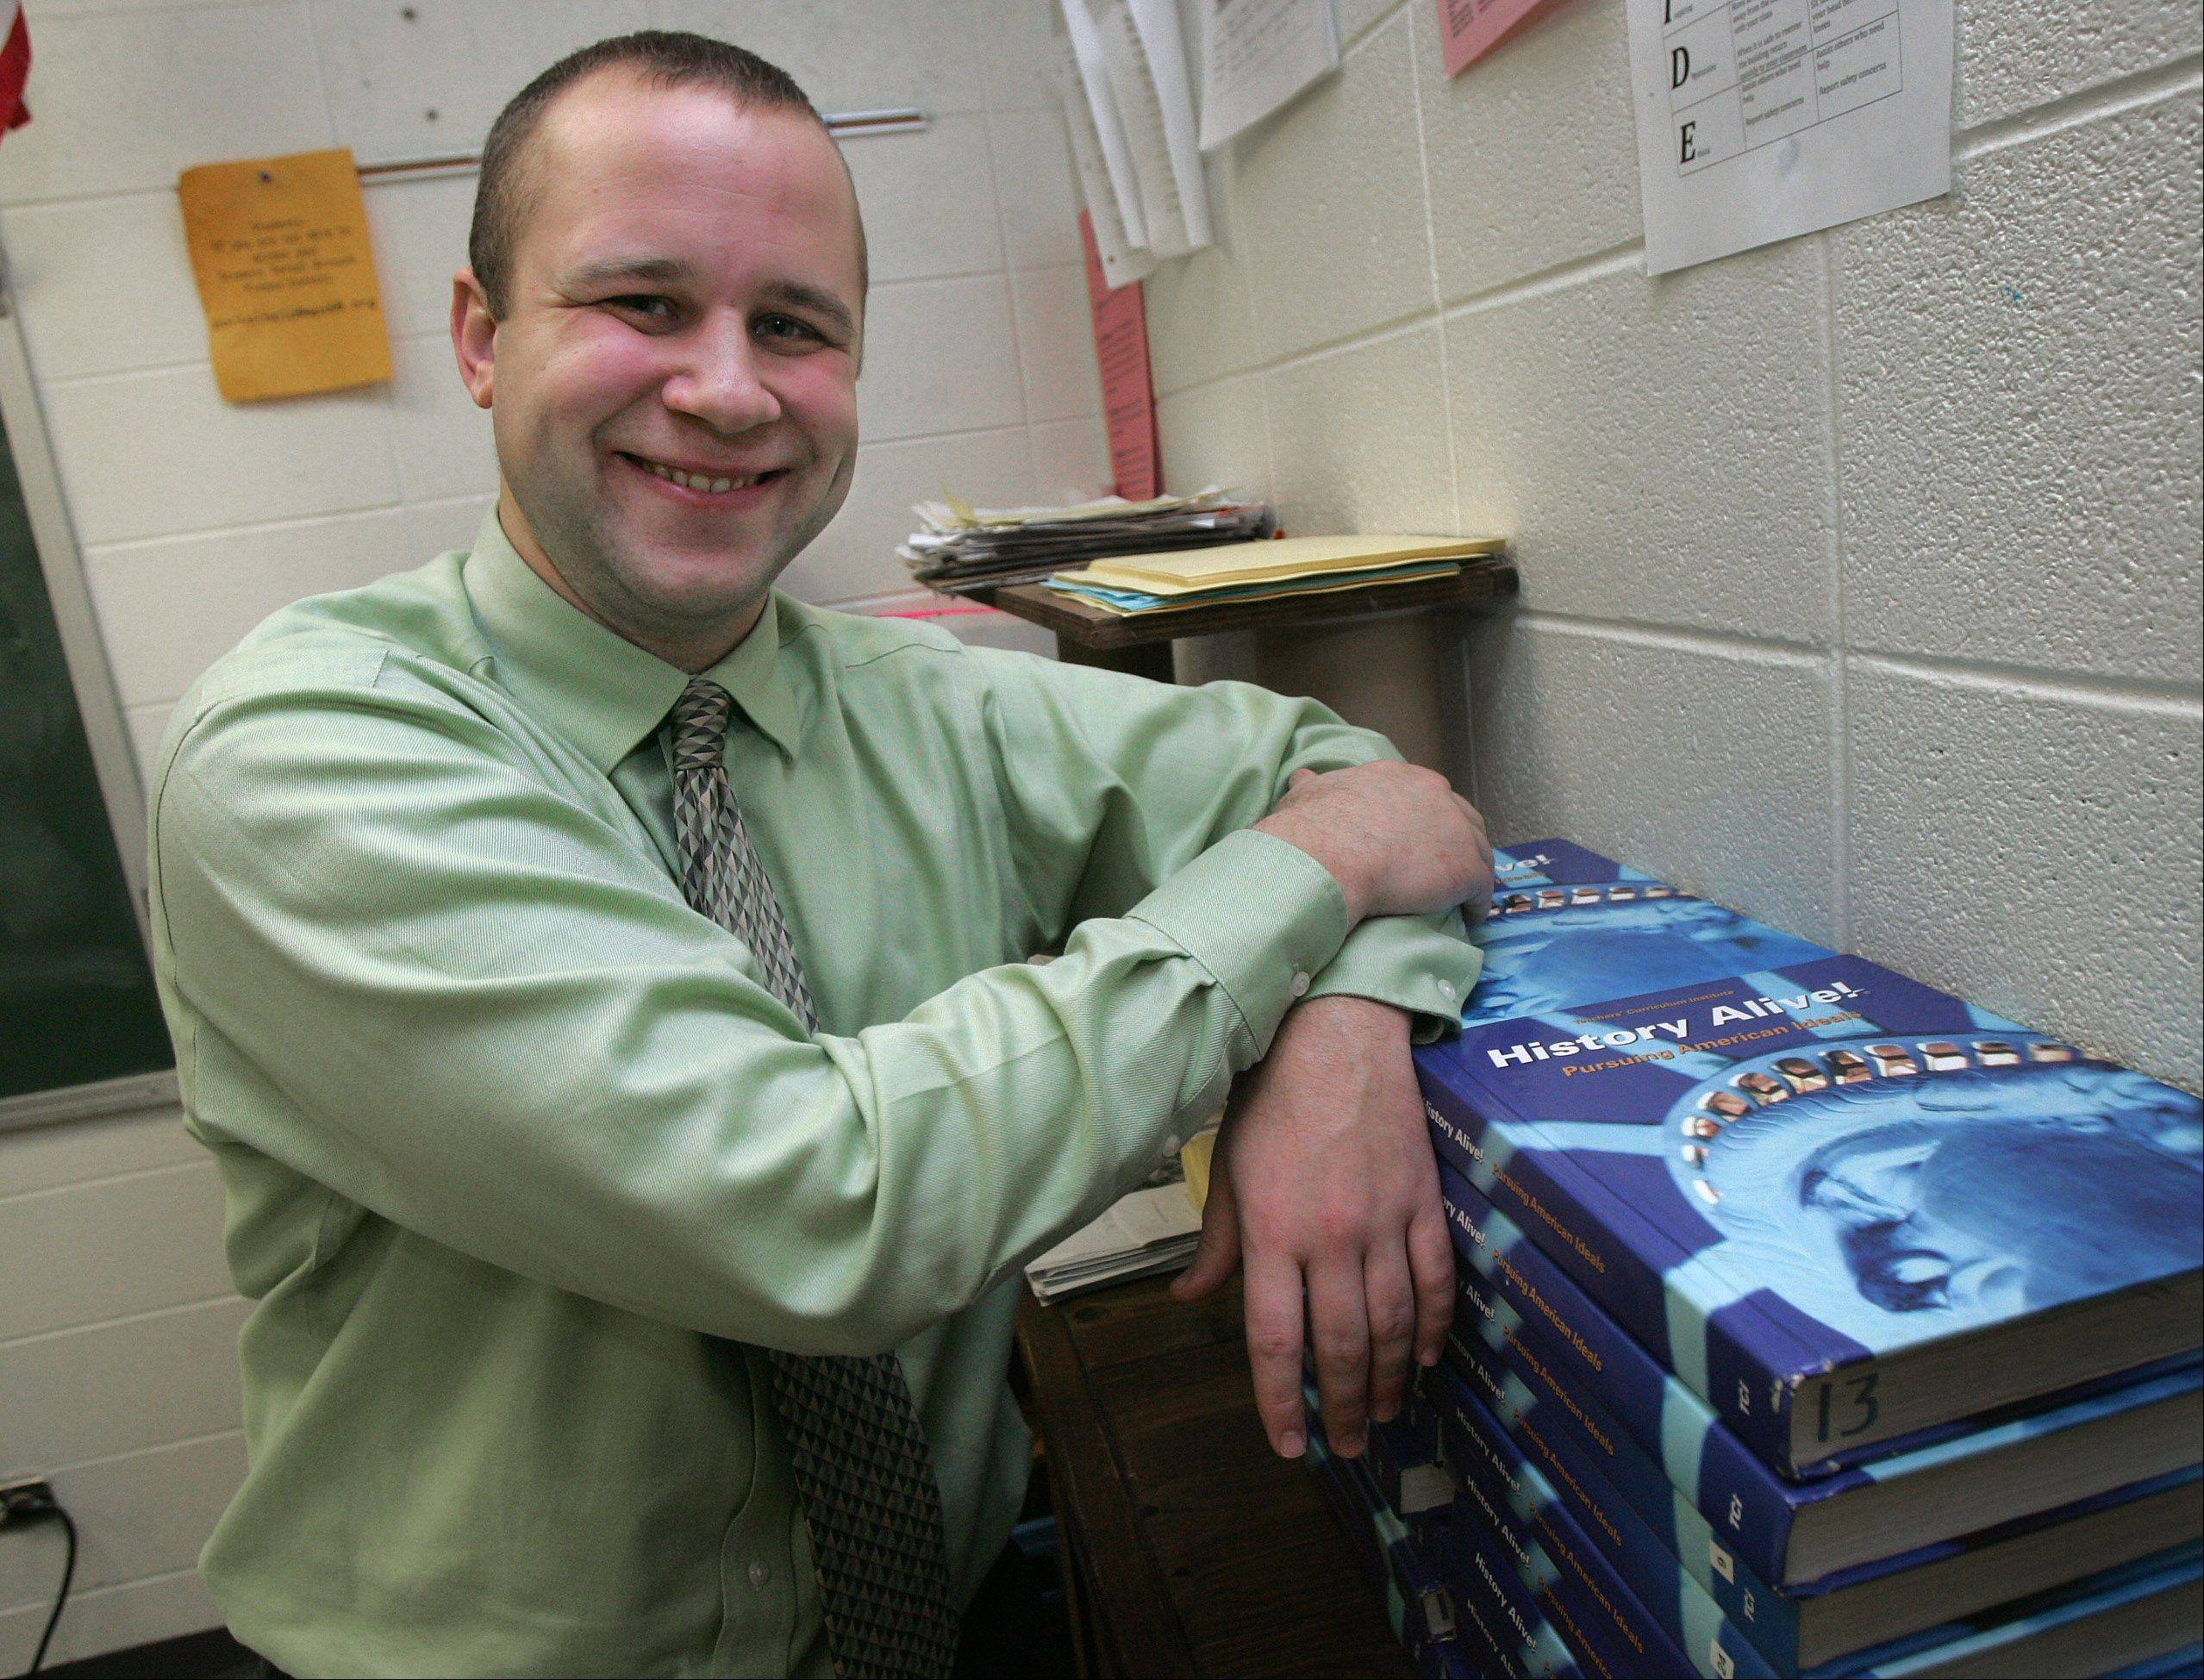 Waukegan High School history teacher Joshua Bill is the winner of the National History Teacher of the Year award. More than 1,000 candidates nationally were nominated.